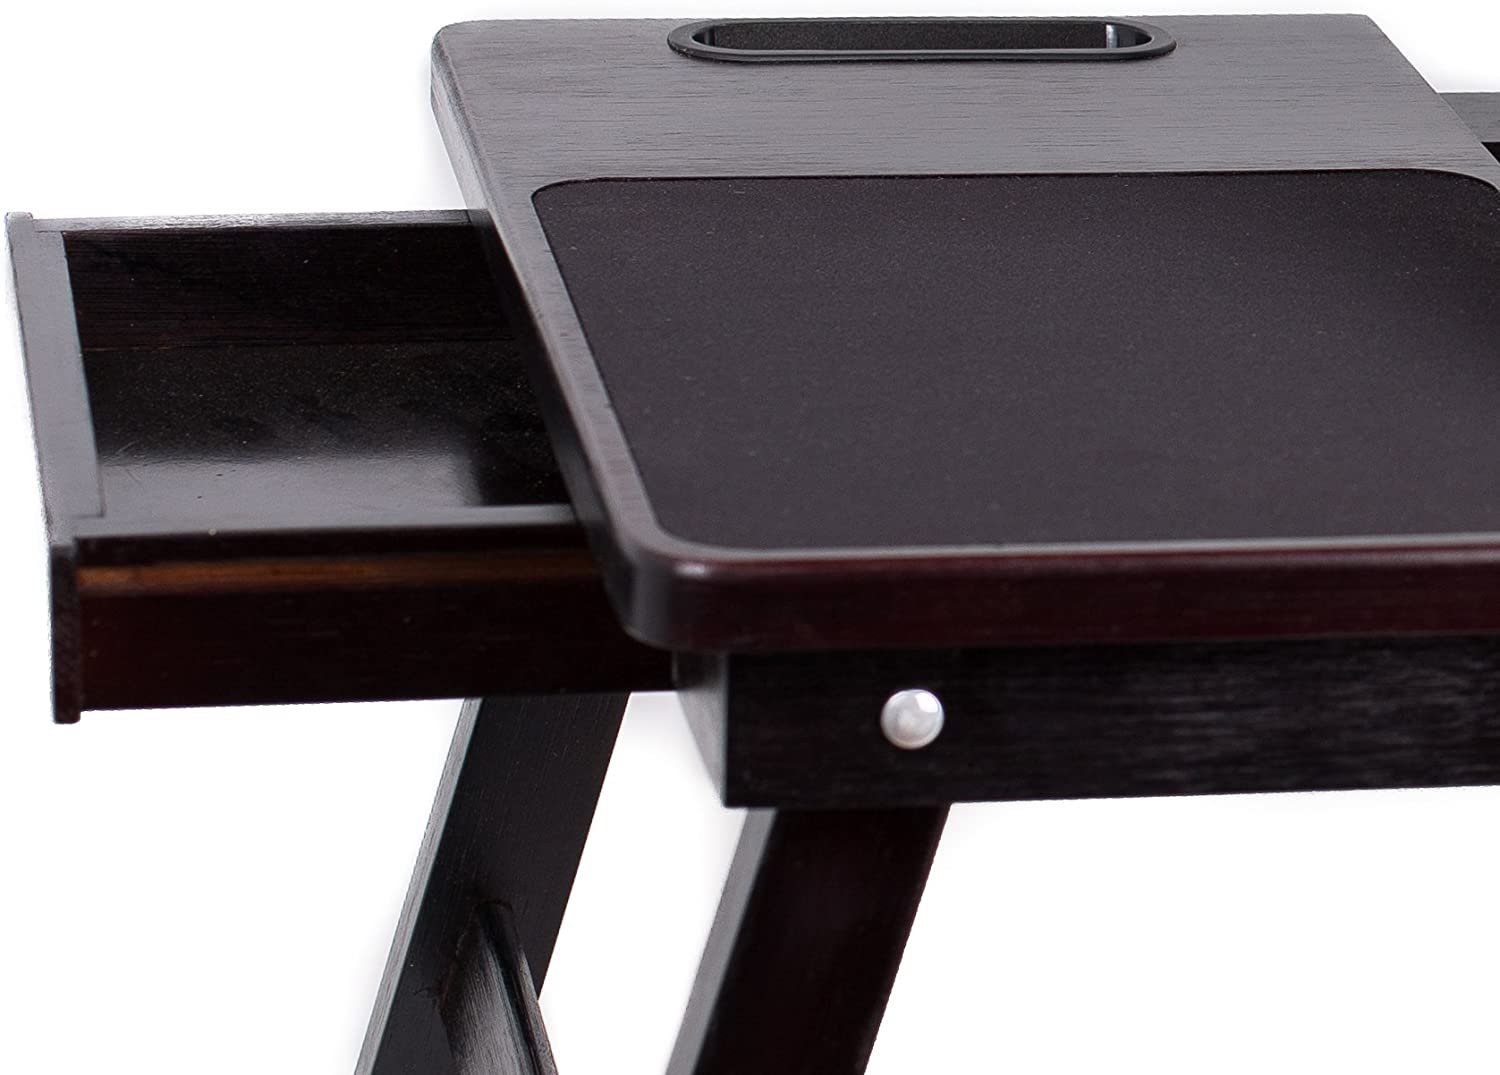 Supports Laptops Up to 18 Inches Walnut Sofia Left Handed Tray Sam Multi Tasking Laptop Bed Tray